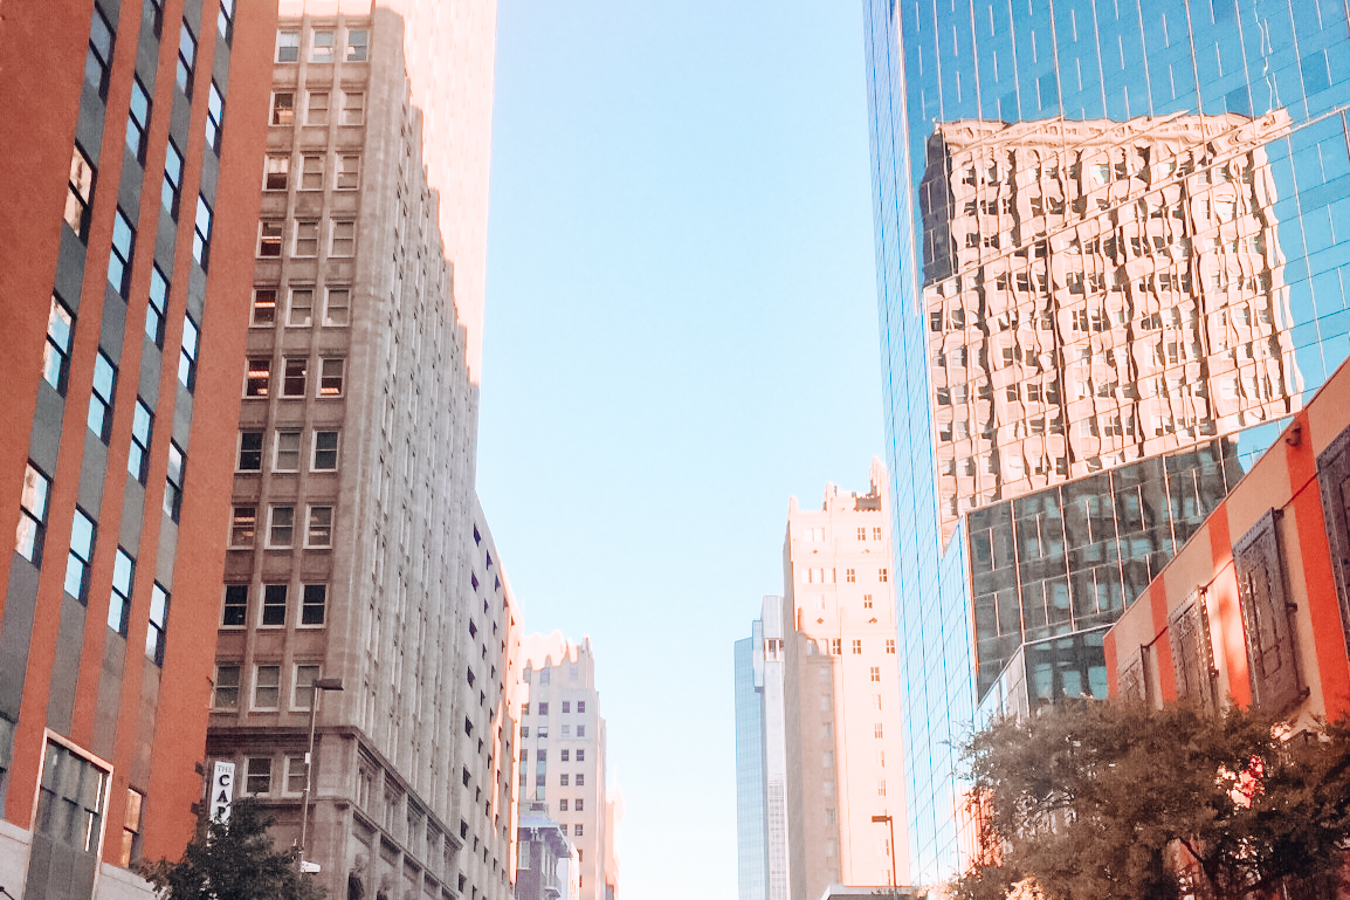 Buildings in the center of Fort Worth